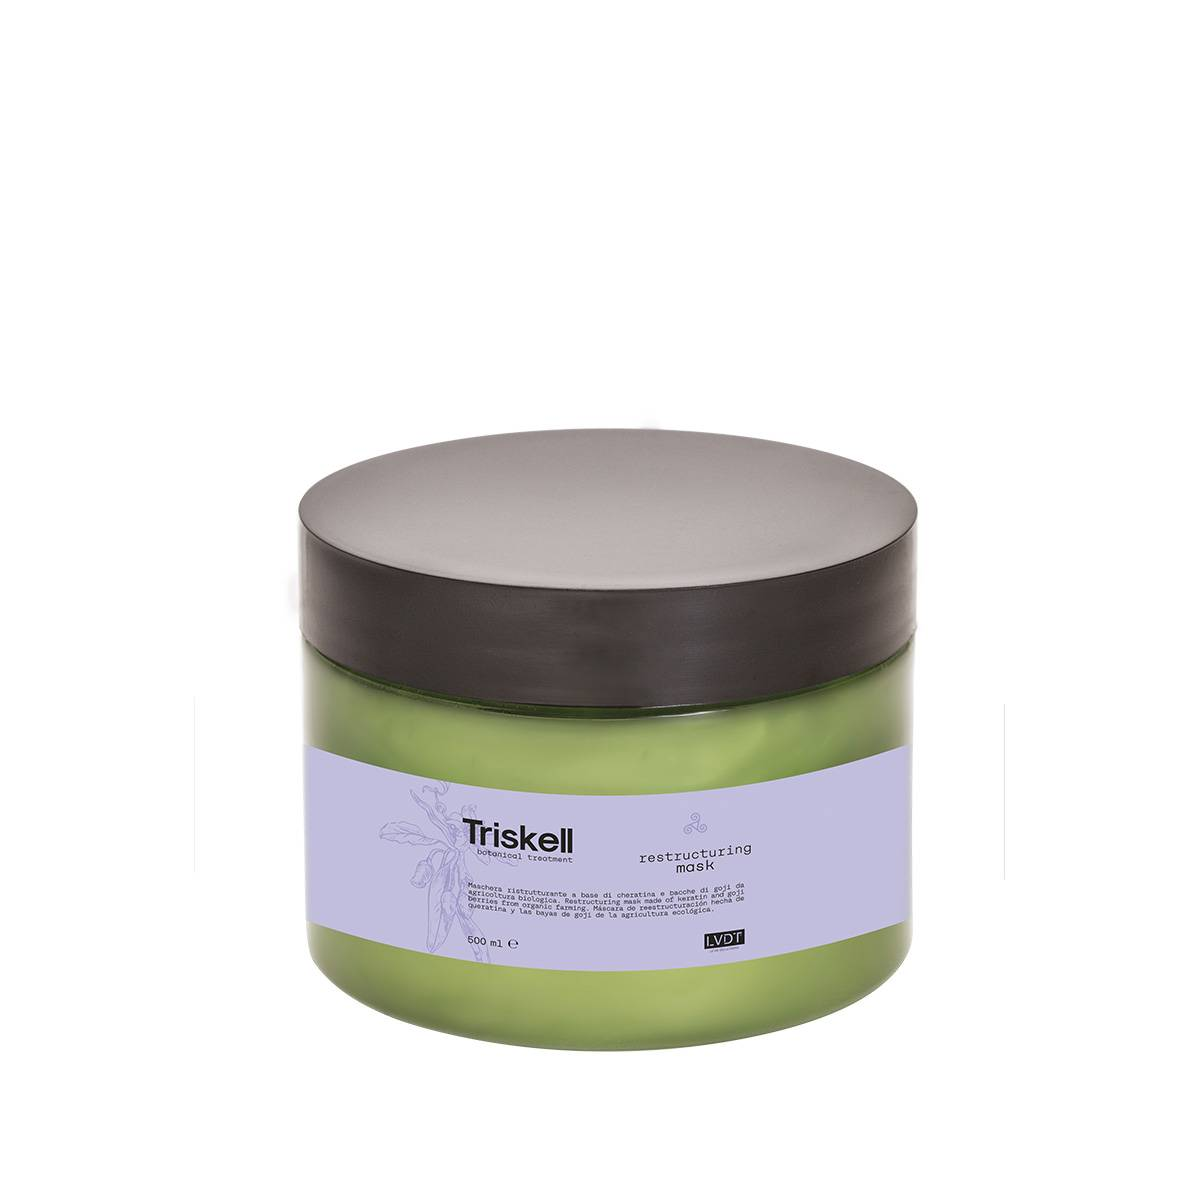 Restructuring Mask 250ml Triskell Nuova Botanical Treatment